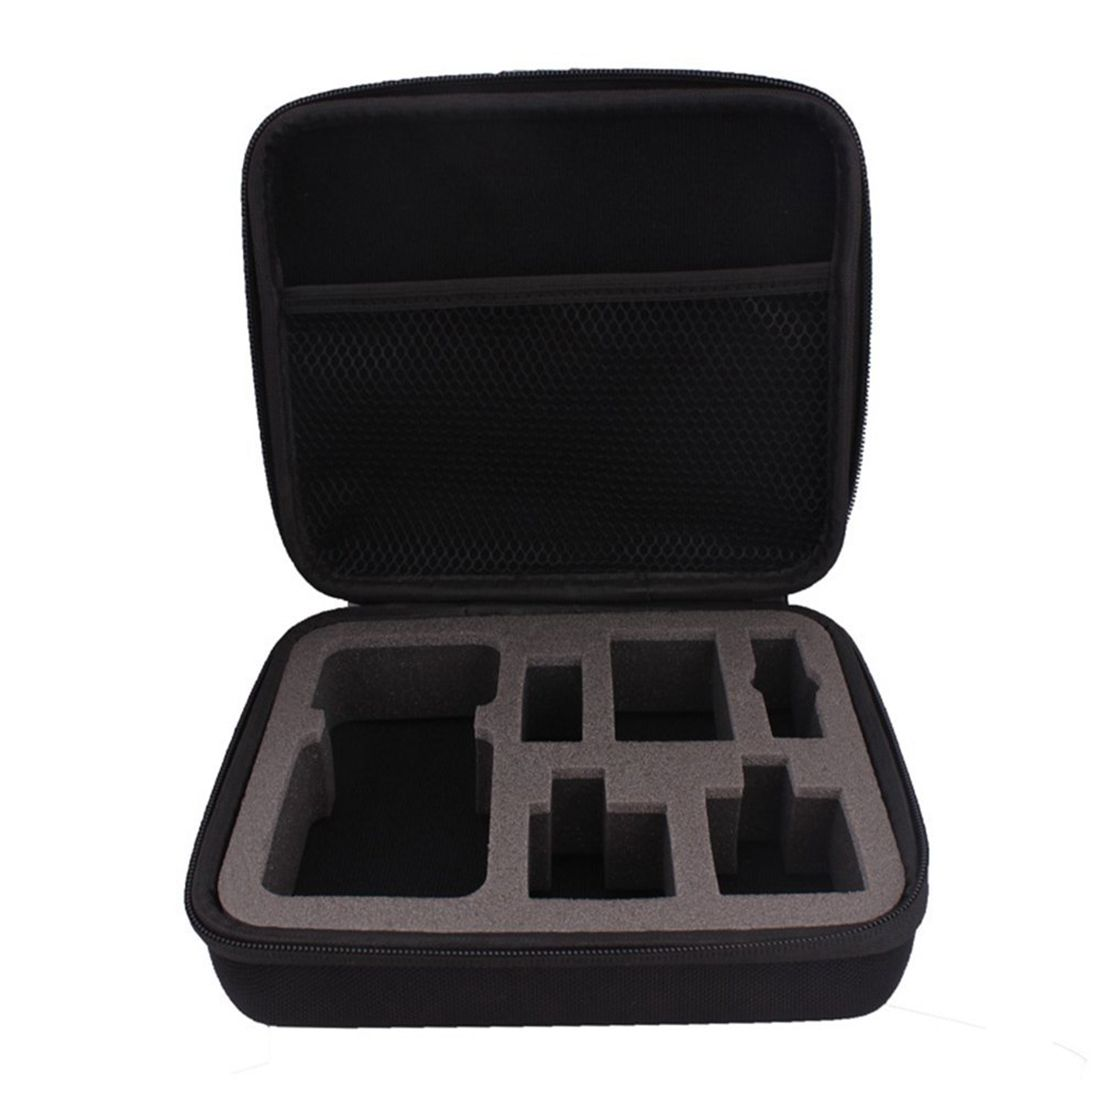 Top Deals Shockproof Protective Action Camera Carrying Case Storage Bag for GoPro Hero4 Session and Related Accessories